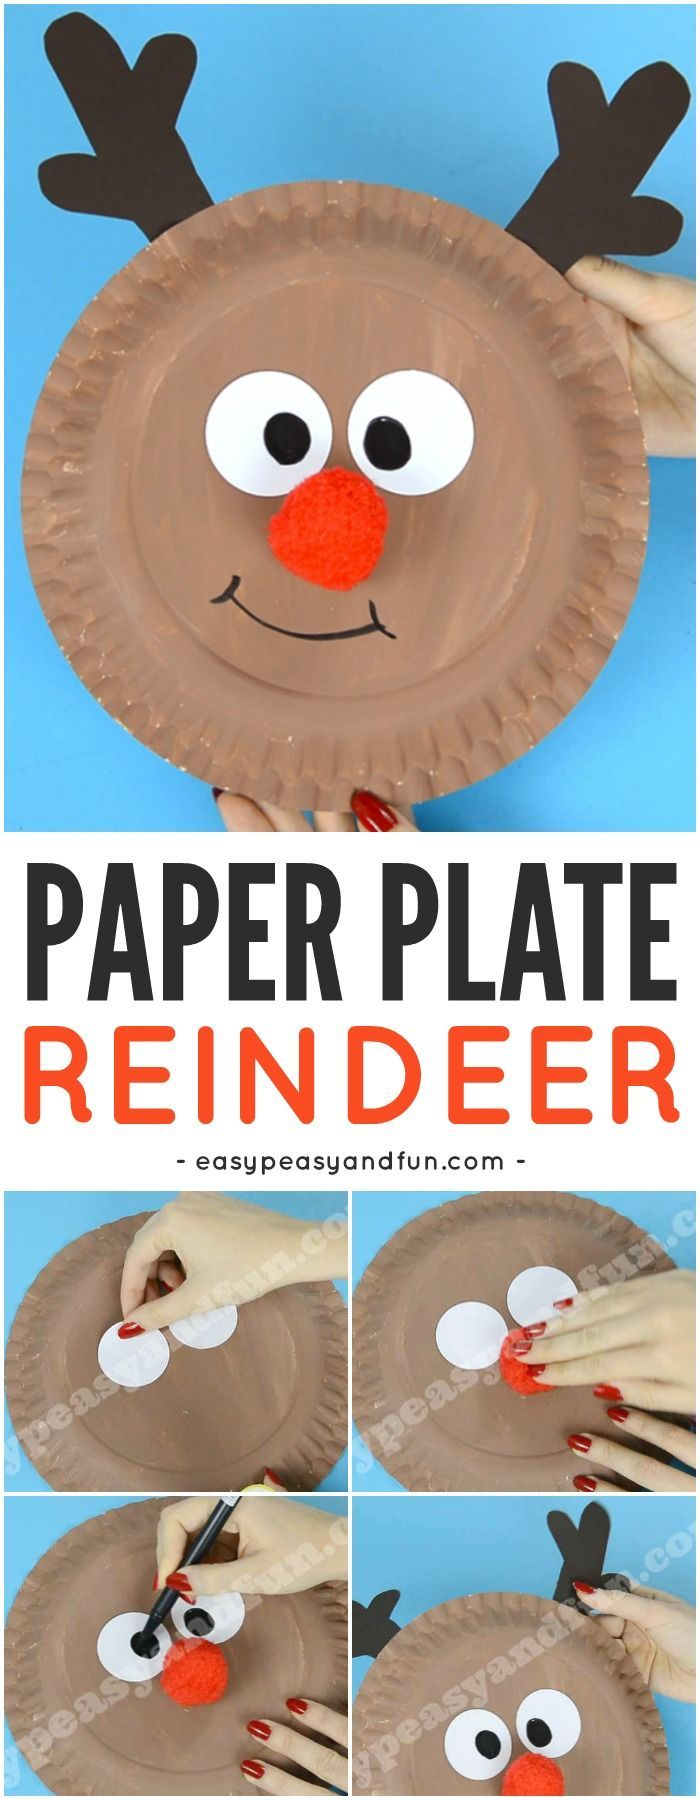 Reindeer paper plate craft with a nice red nose